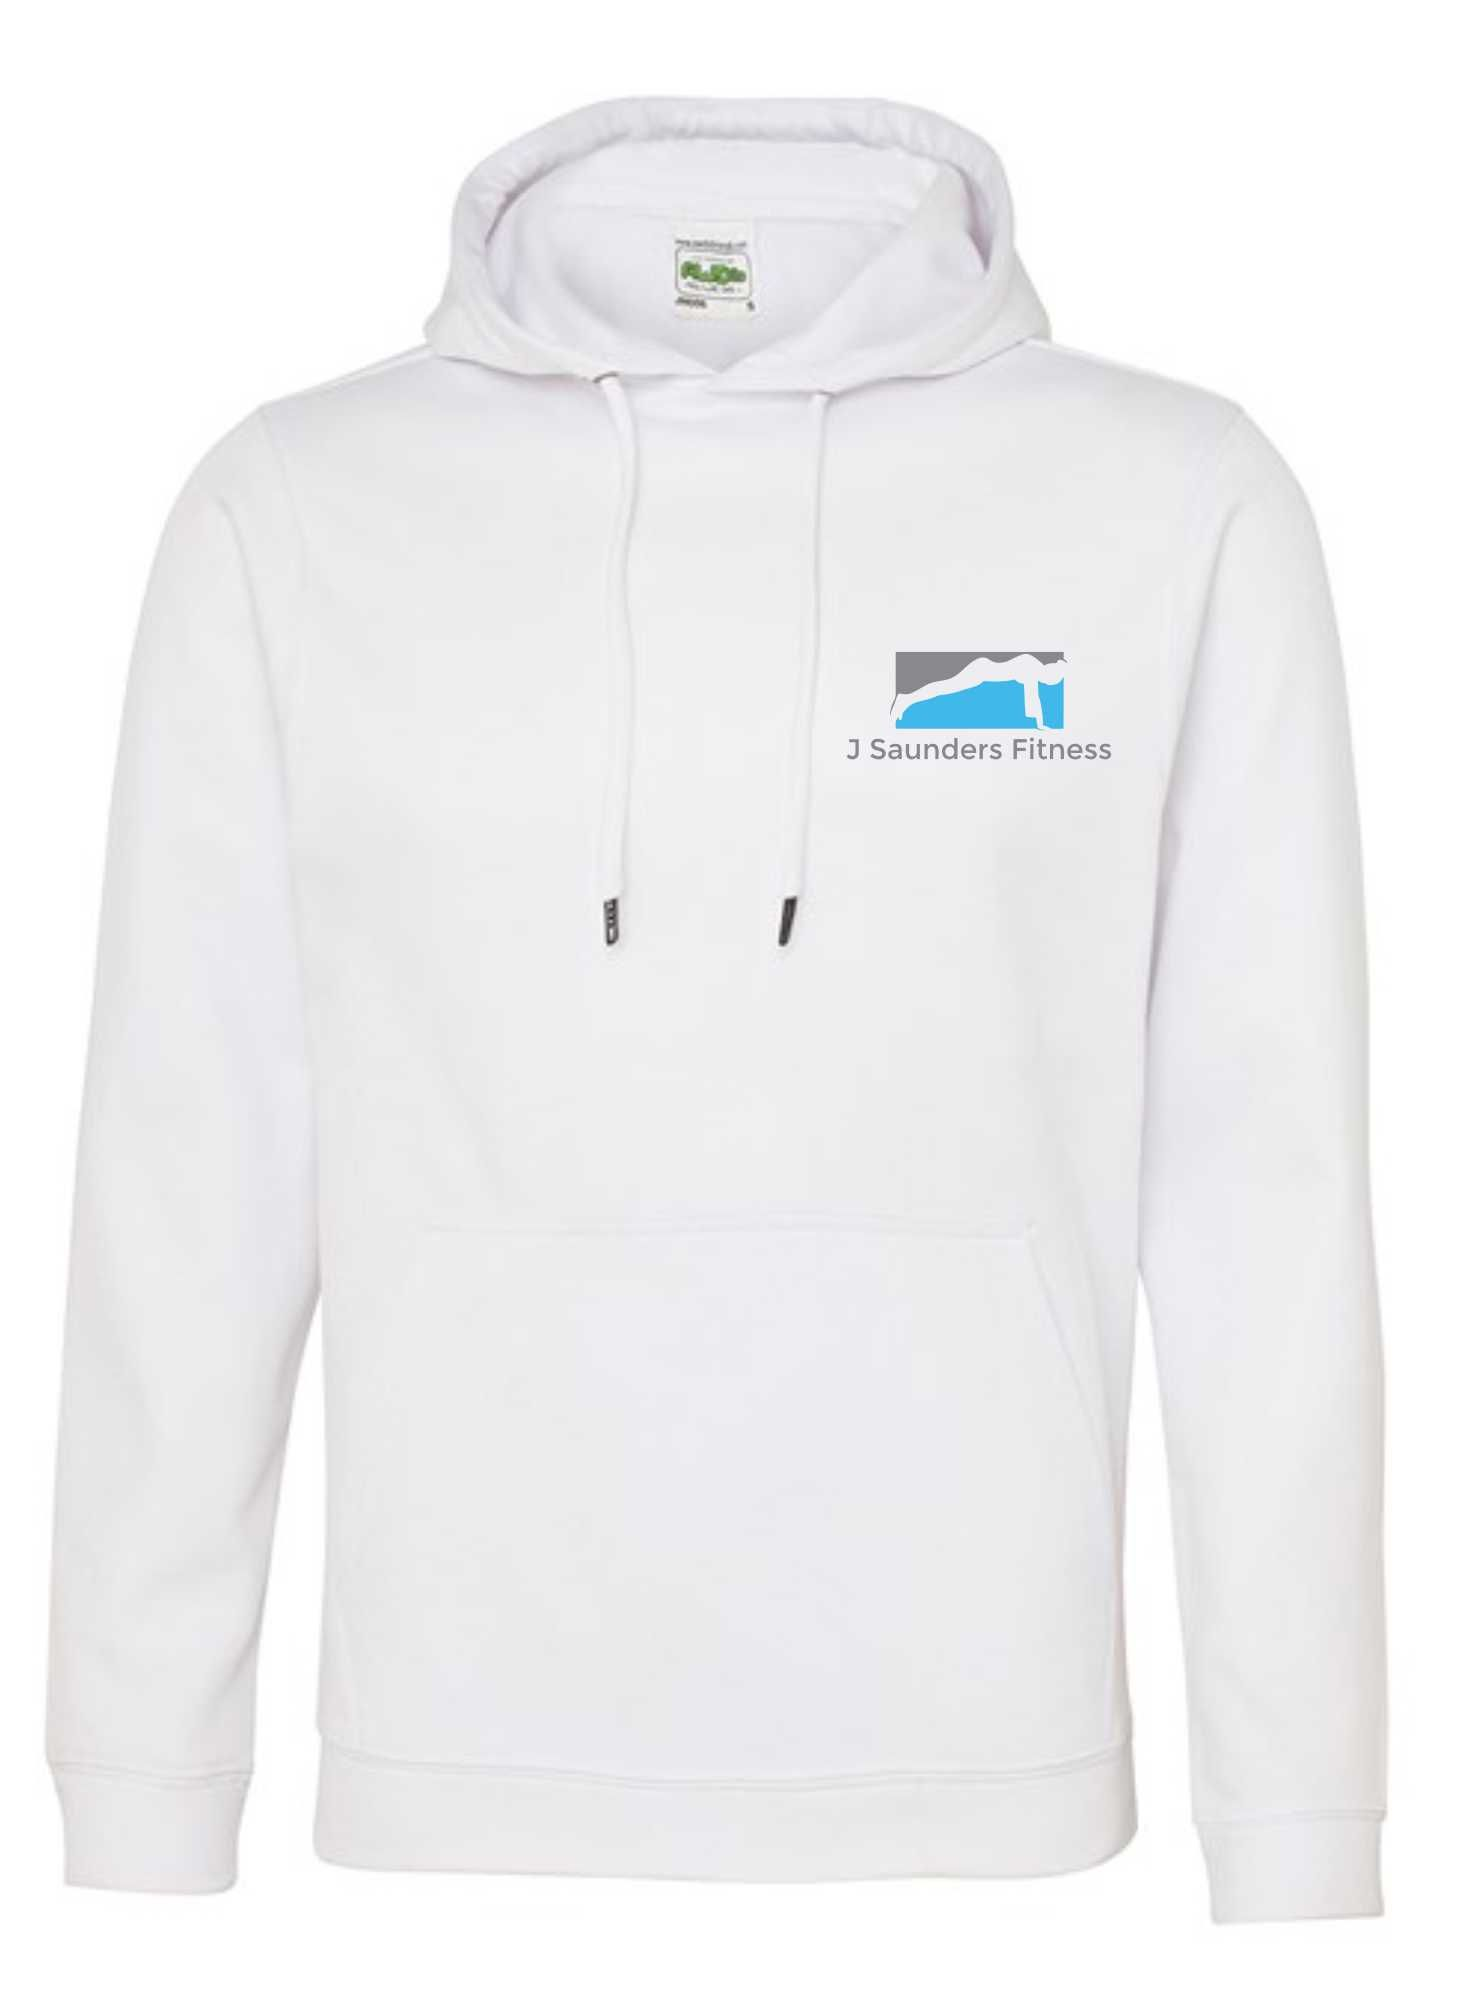 J Saunders Fitness- Polyester Unisex Sports Hoodie (Front & Back)